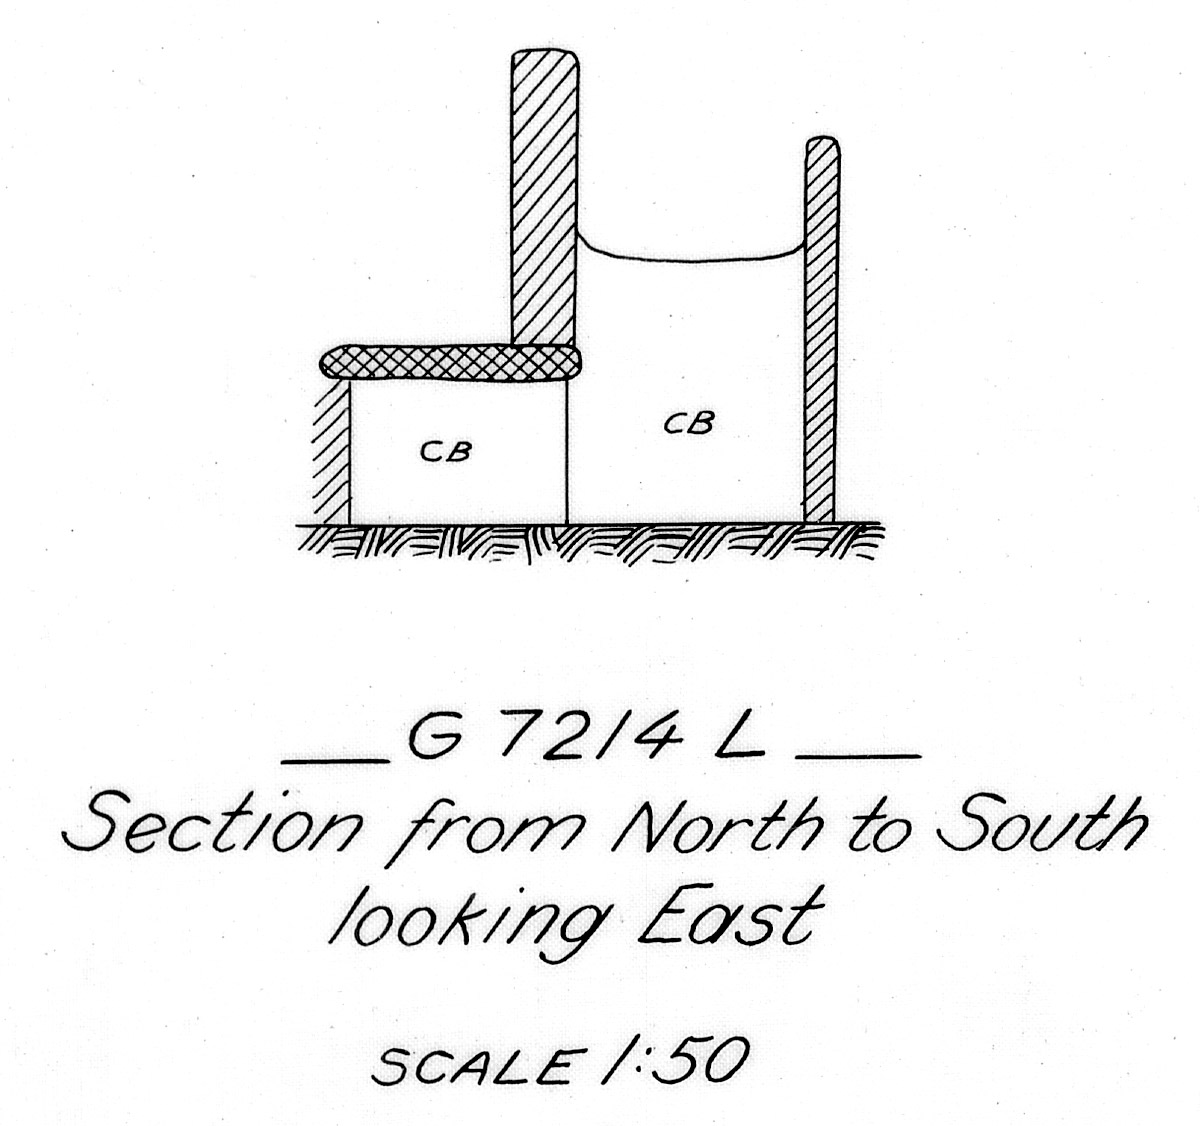 Maps and plans: G 7214, Shaft L